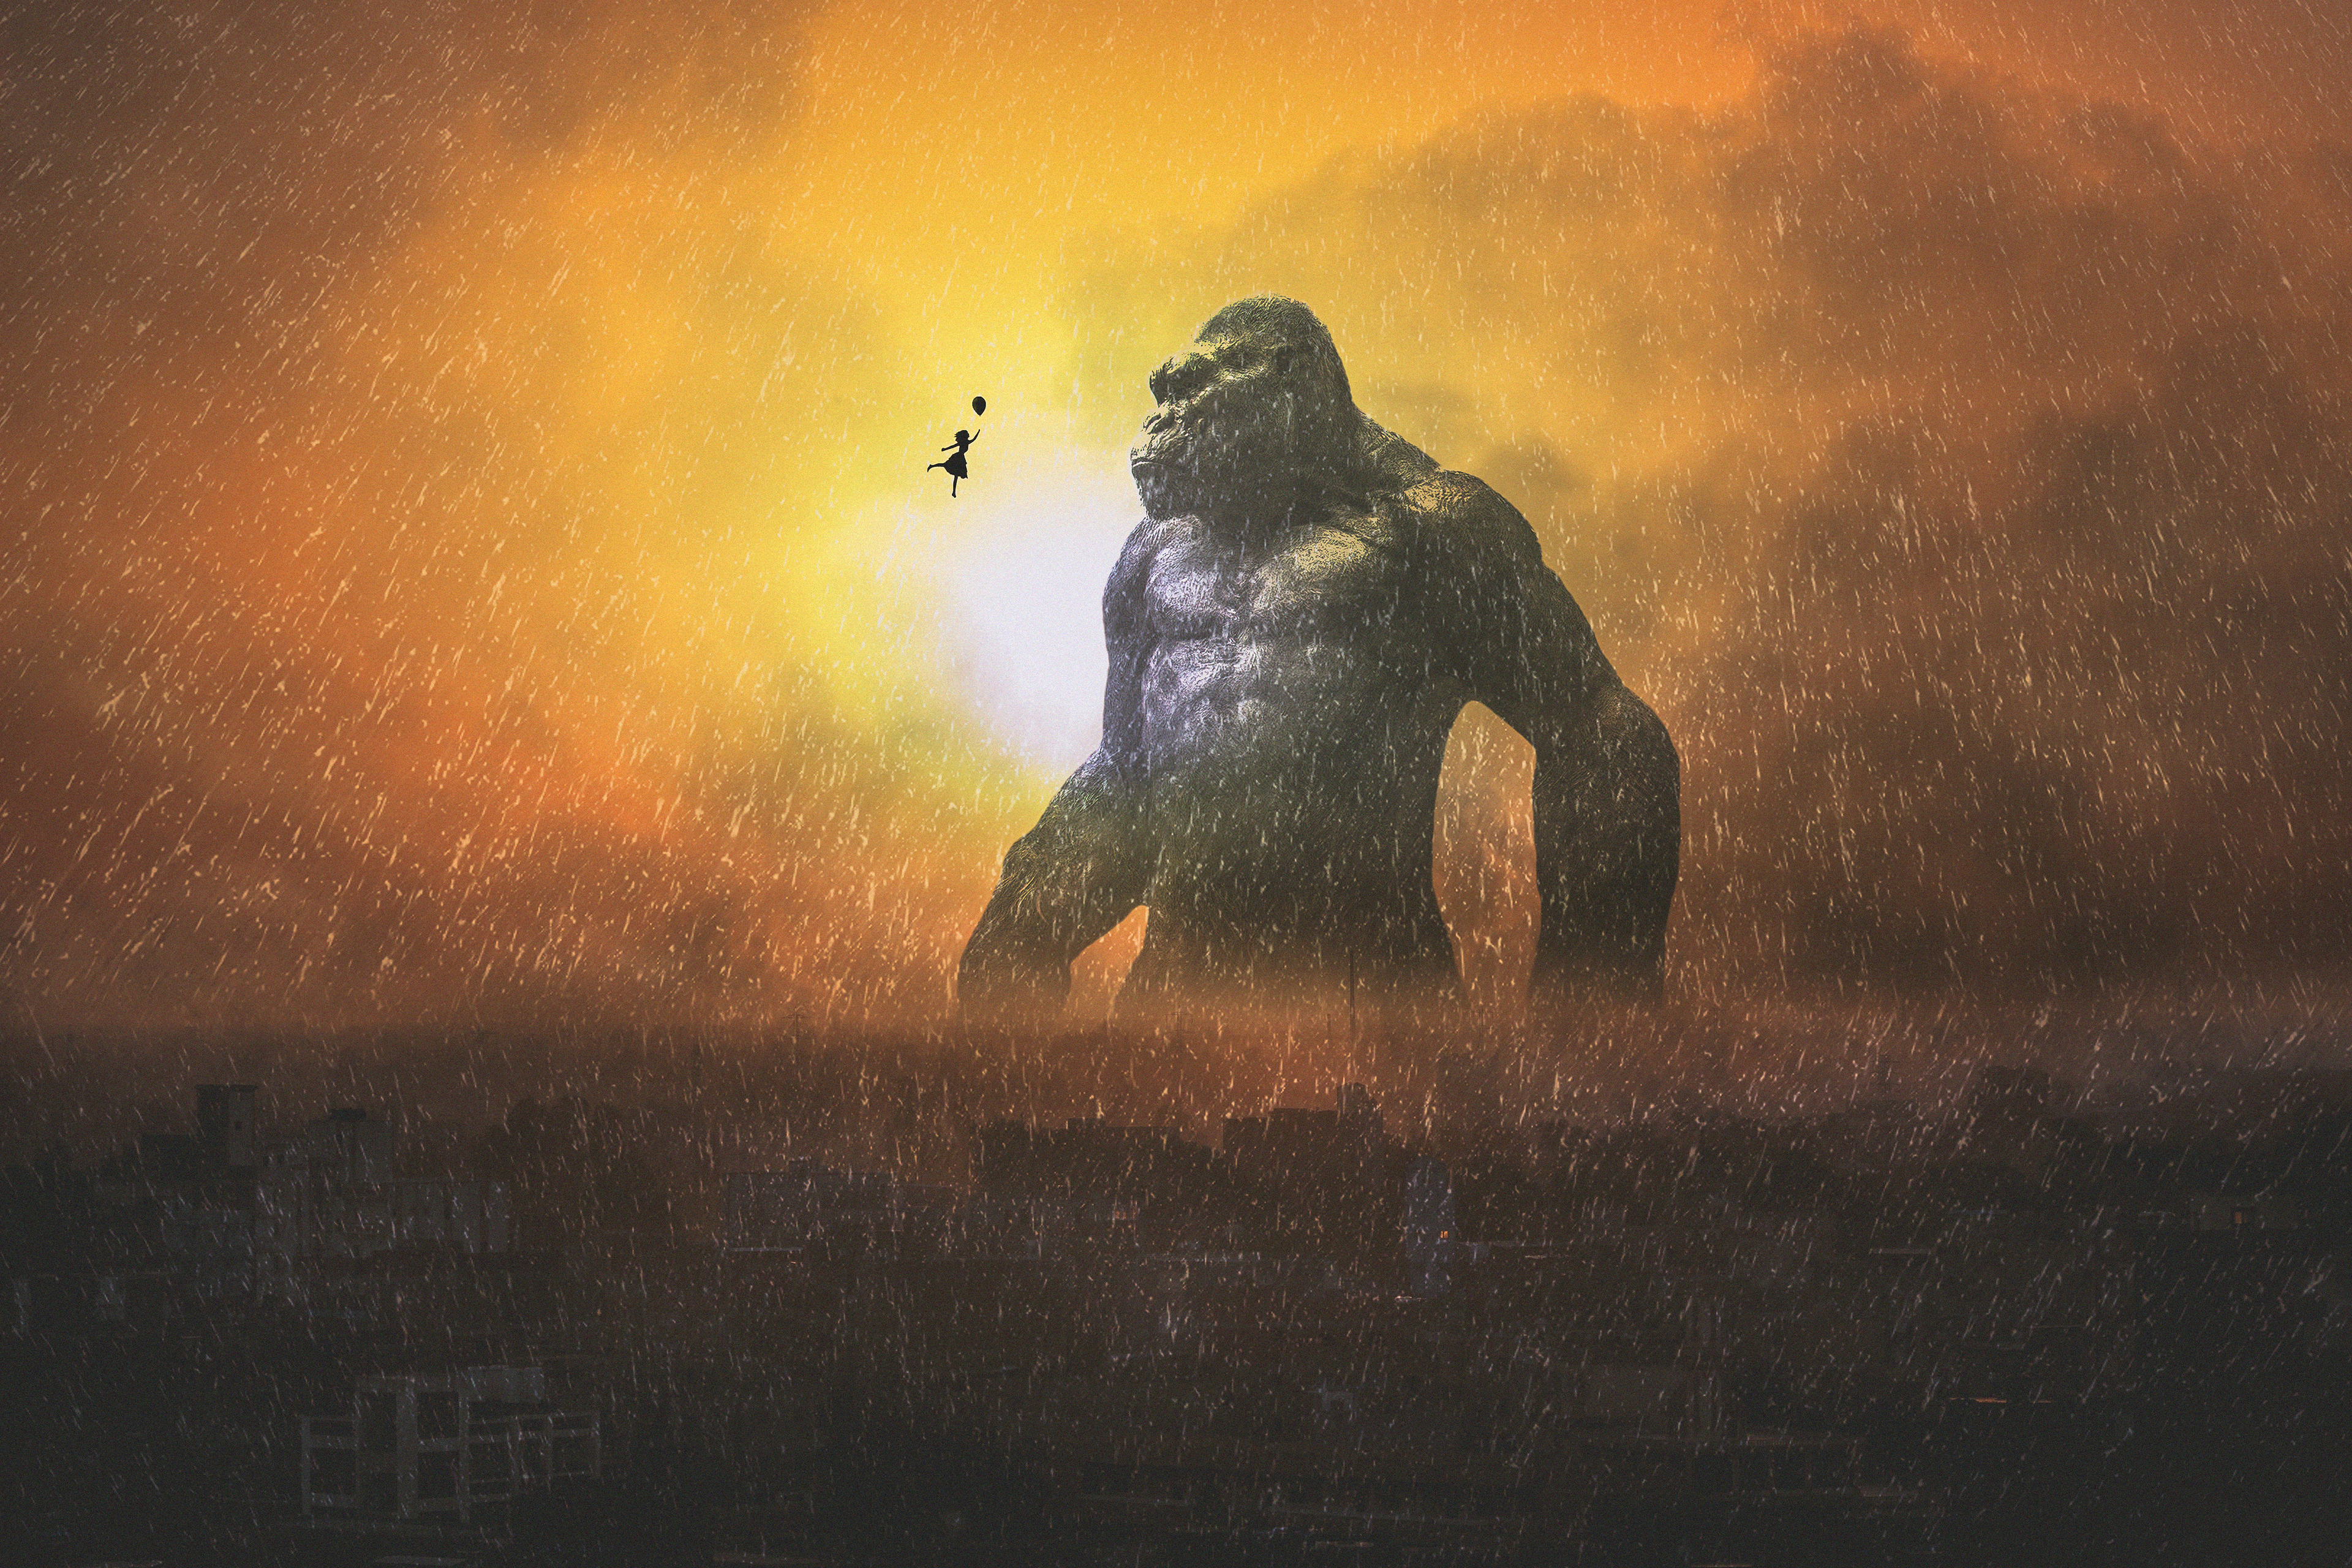 2560x1440 King Kong 4k 1440p Resolution Hd 4k Wallpapers Images Backgrounds Photos And Pictures